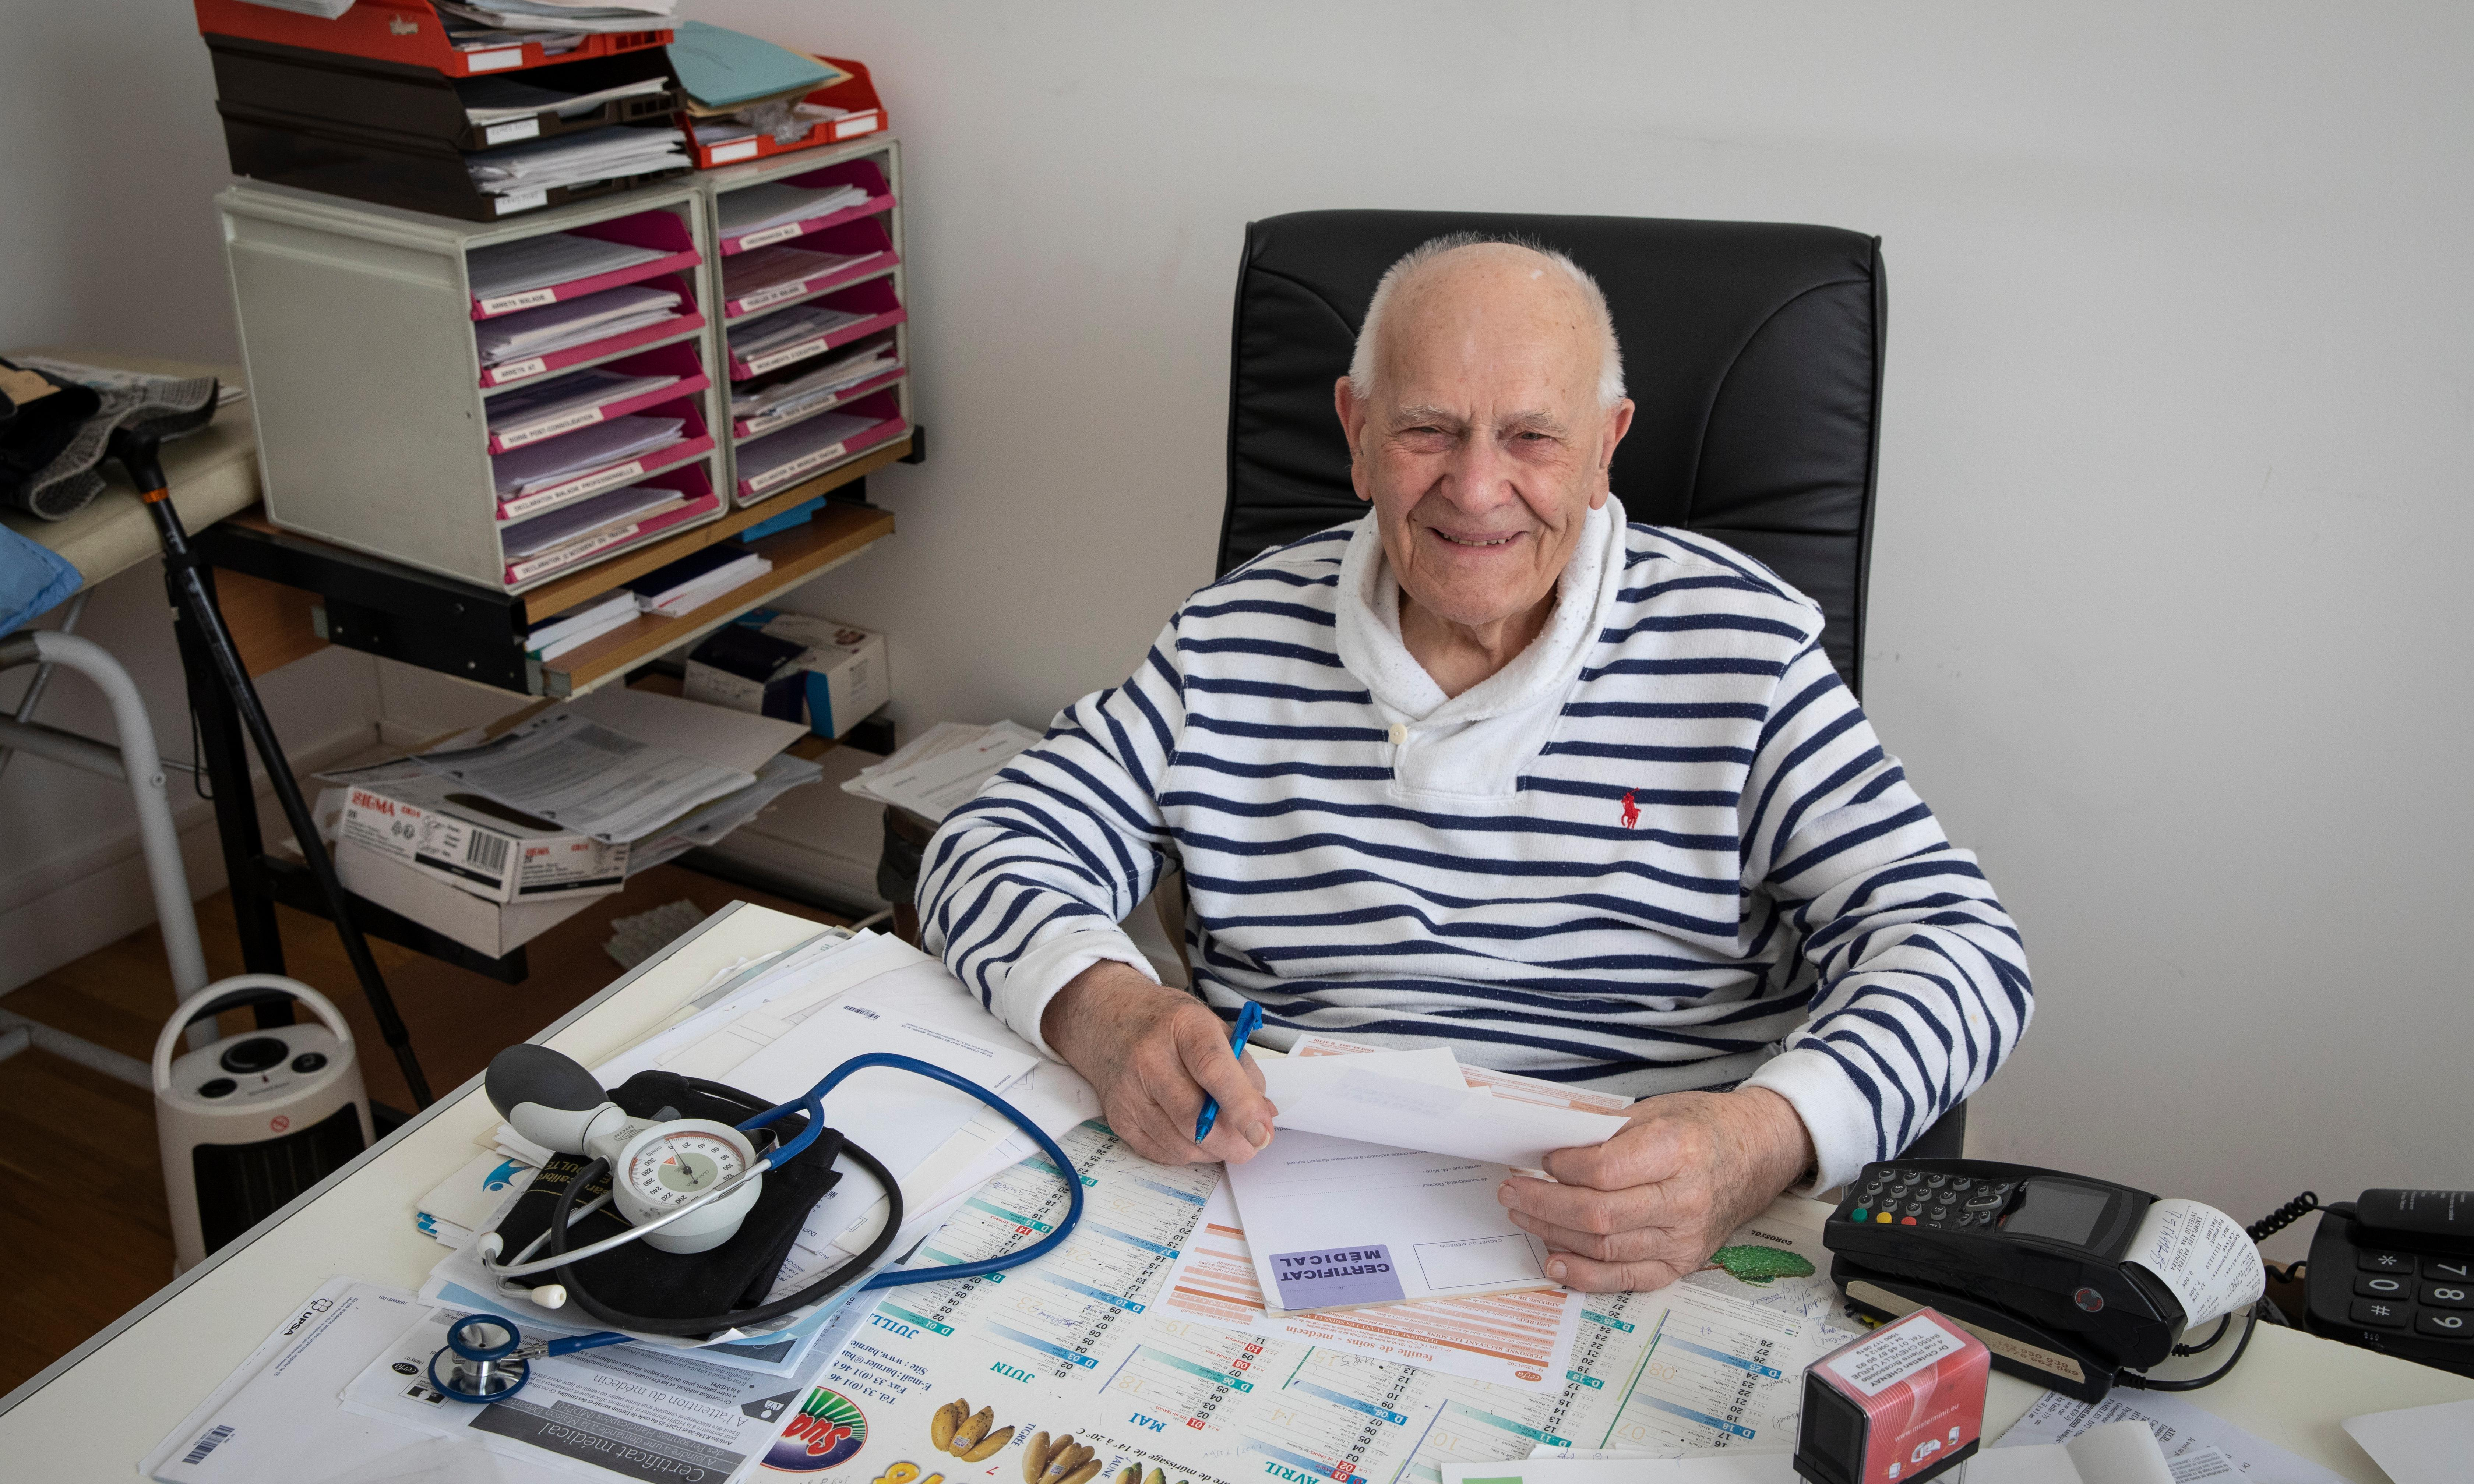 'What keeps me going? My patients,' says France's oldest doctor at 98